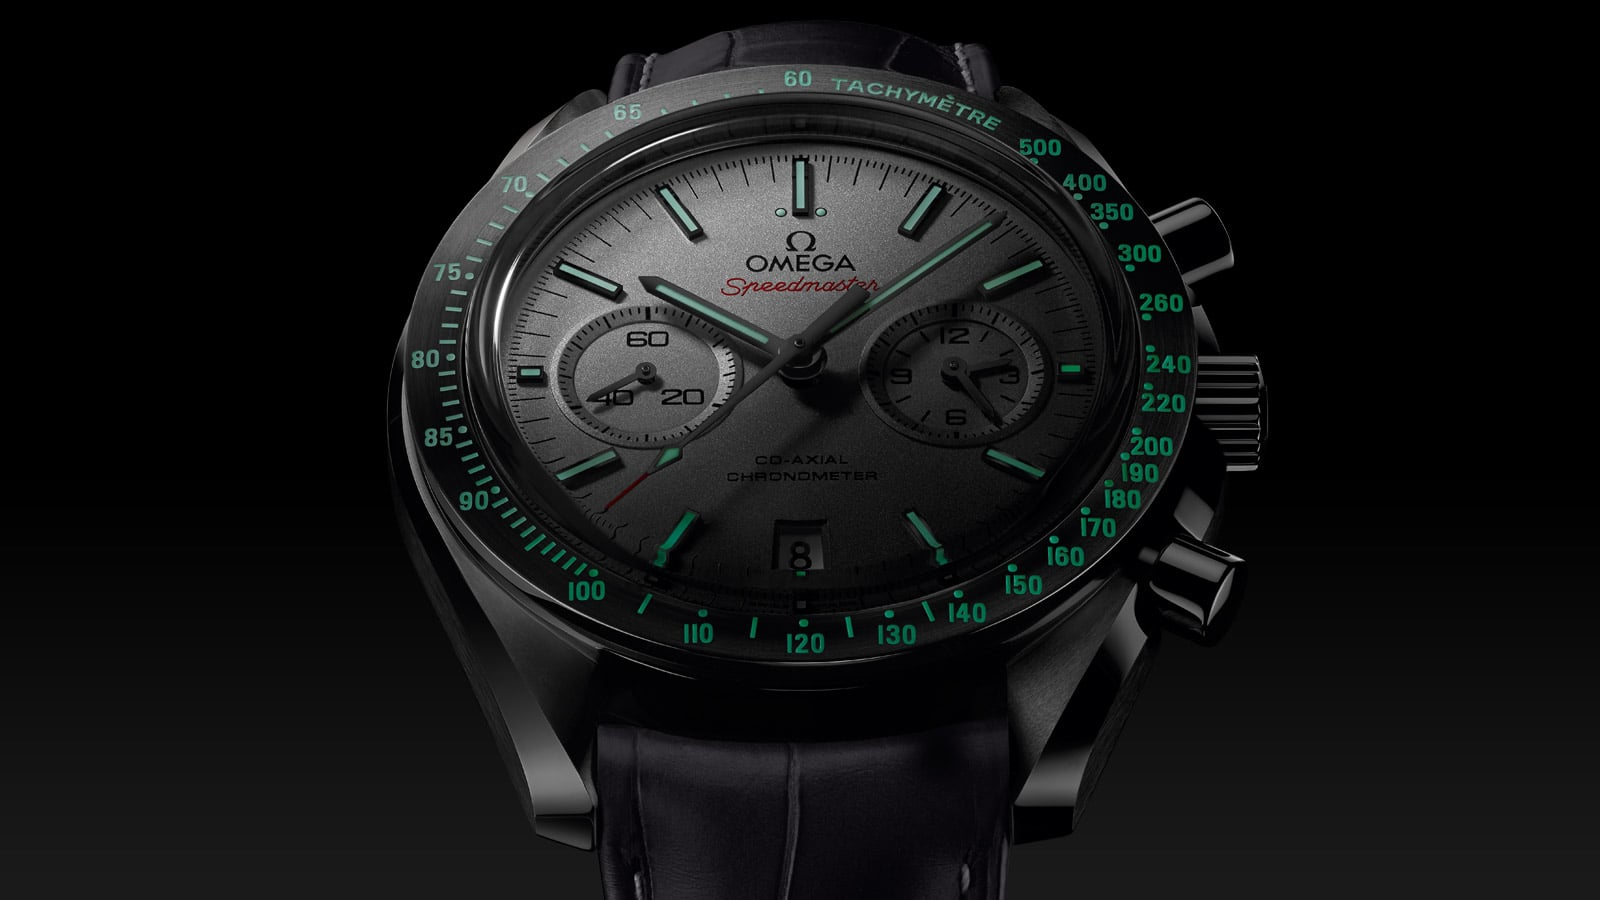 INNOVATIVE SUPER-LUMINOVA